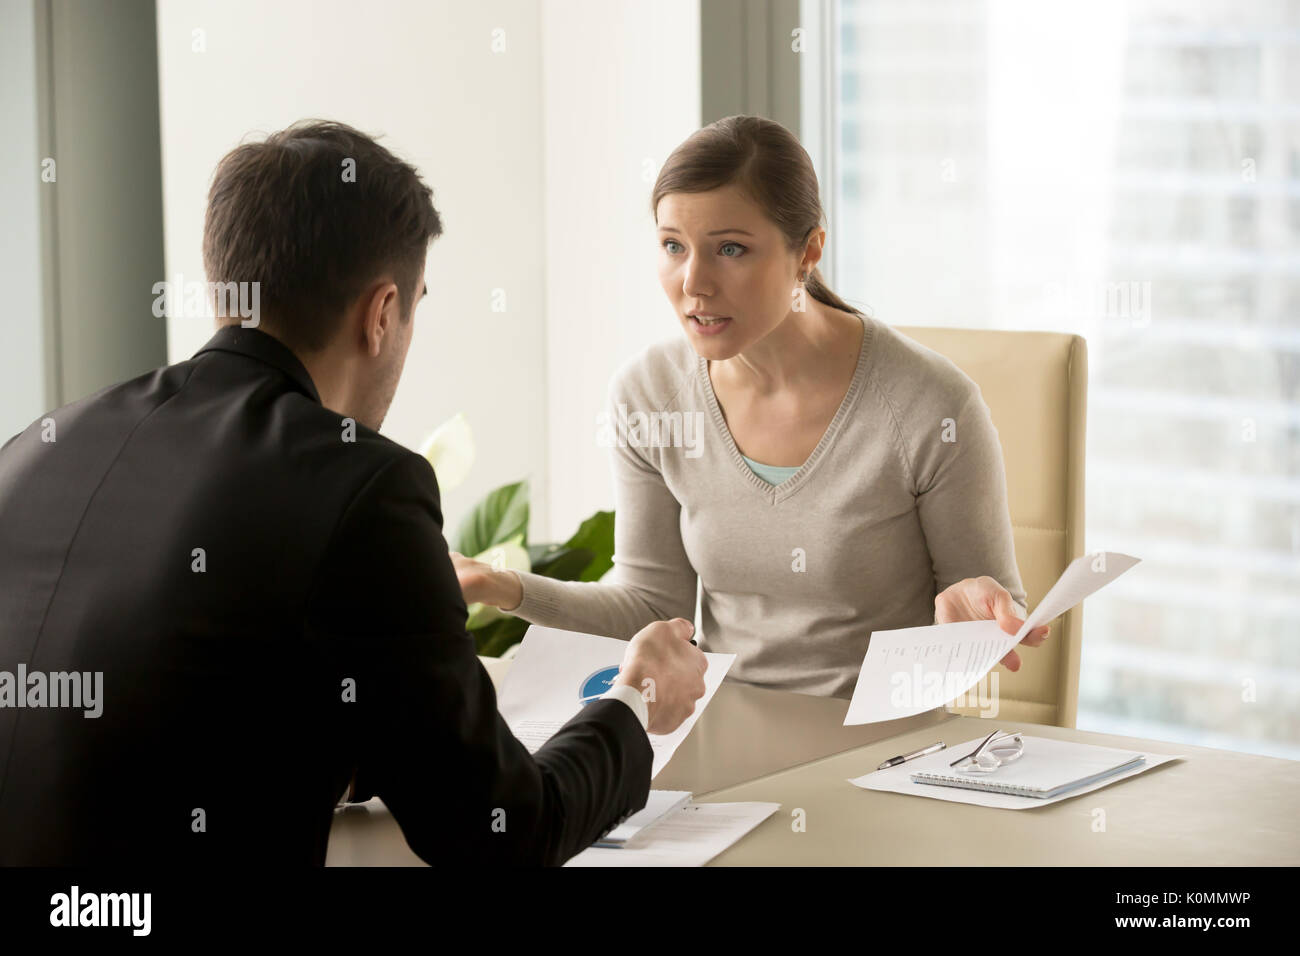 Angry businesswoman arguing with businessman about paperwork fai - Stock Image